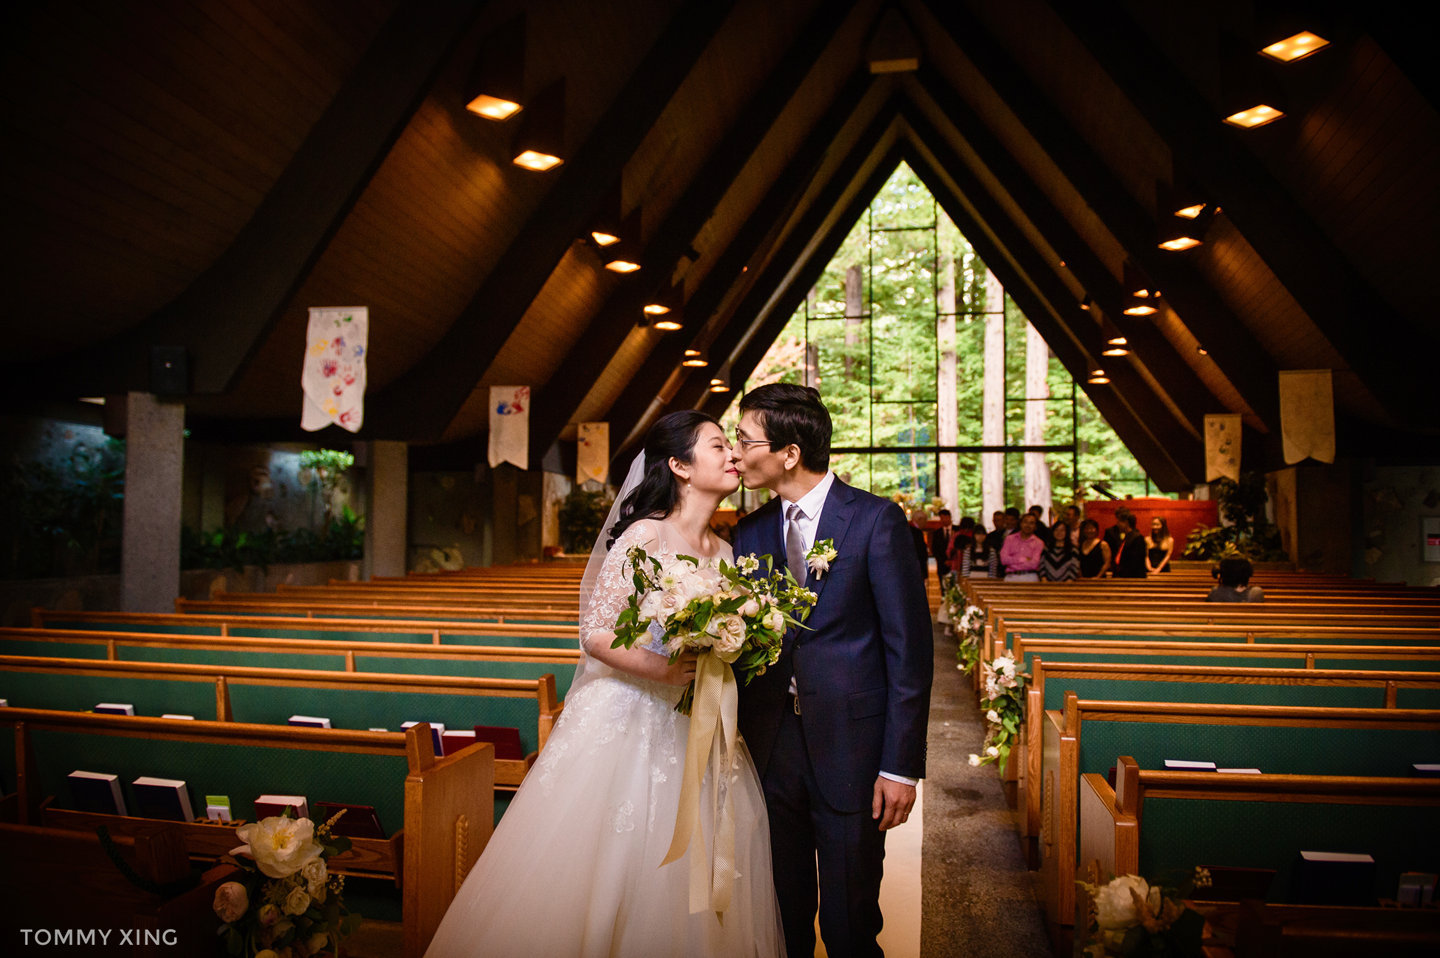 San Francisco Wedding Photography Valley Presbyterian Church WEDDING Tommy Xing Photography 洛杉矶旧金山婚礼婚纱照摄影师094.jpg